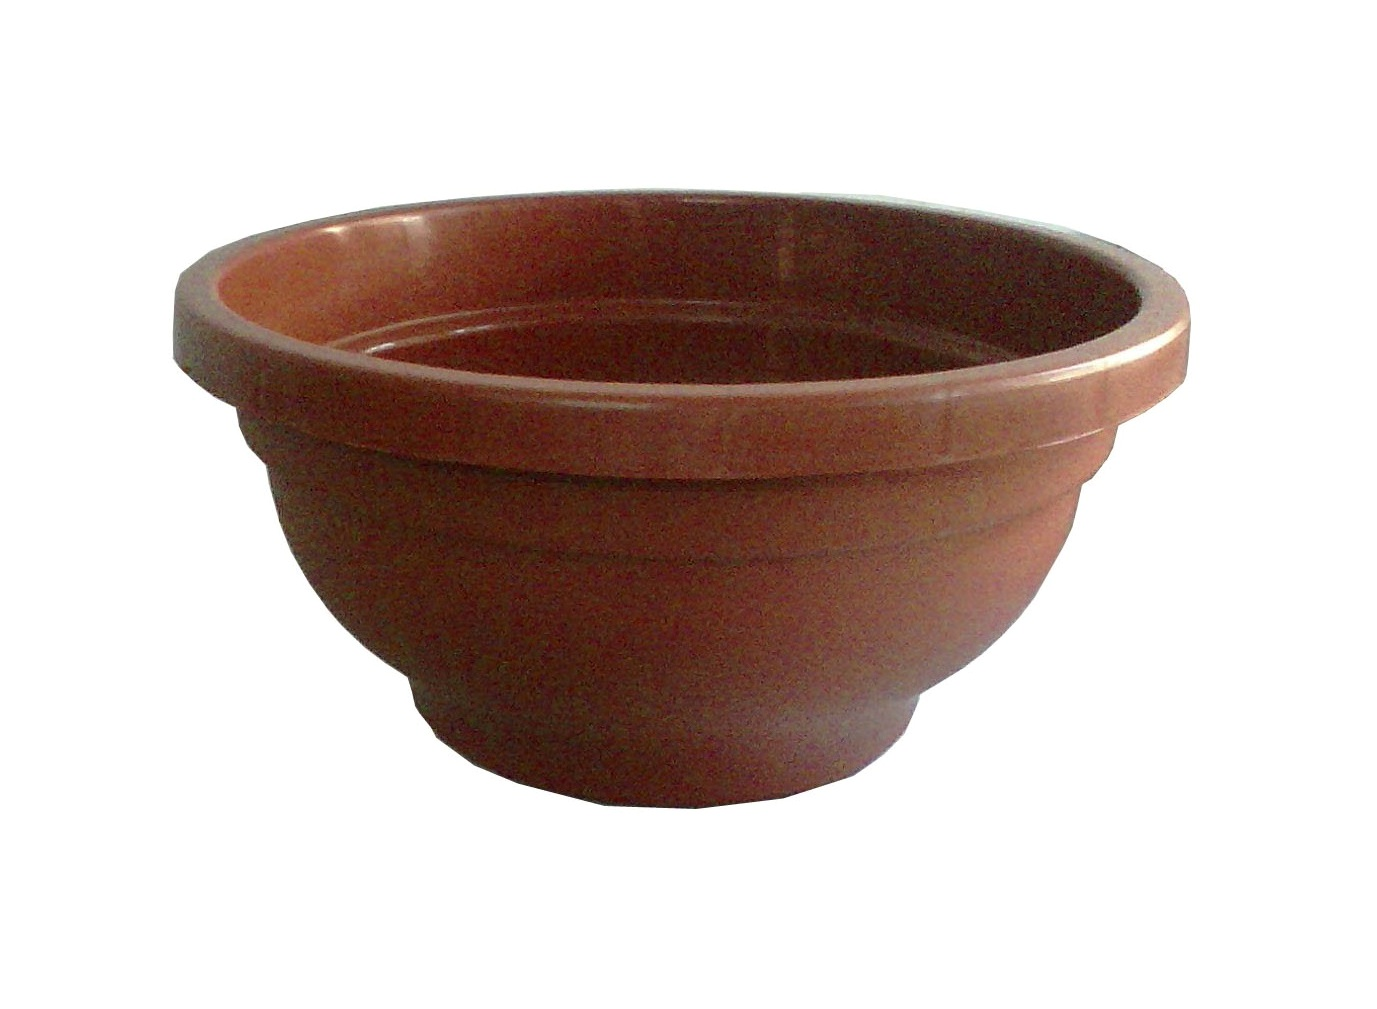 Bonsai Trees And Plants In Ahmedabad For Sale Plastic Pots Containers